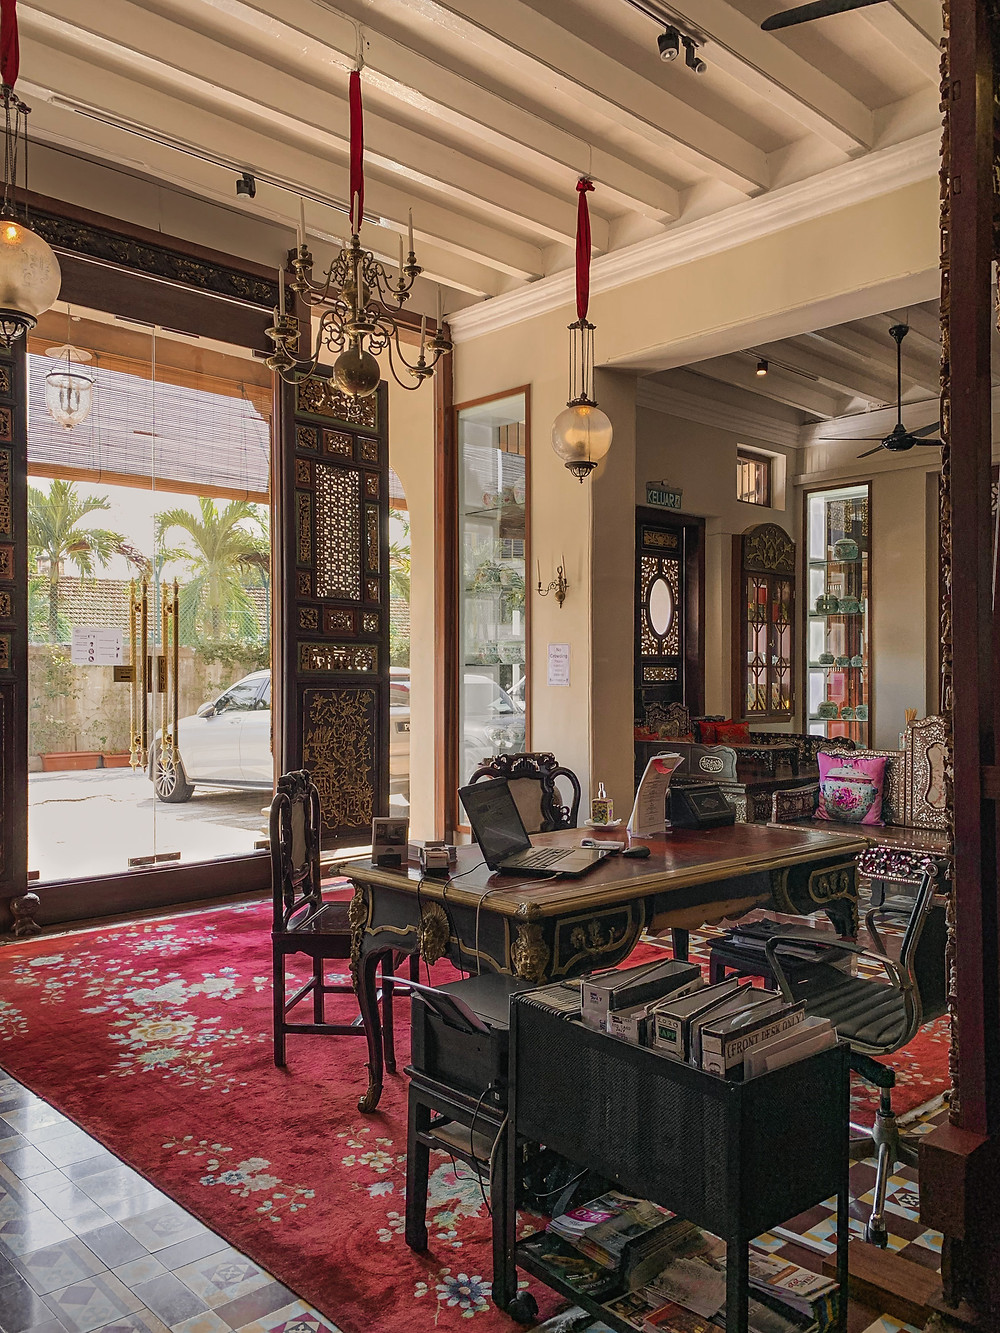 Antique Peranakan furniture at the Seven Terraces hotel reception, photography by RollingBear Travels.